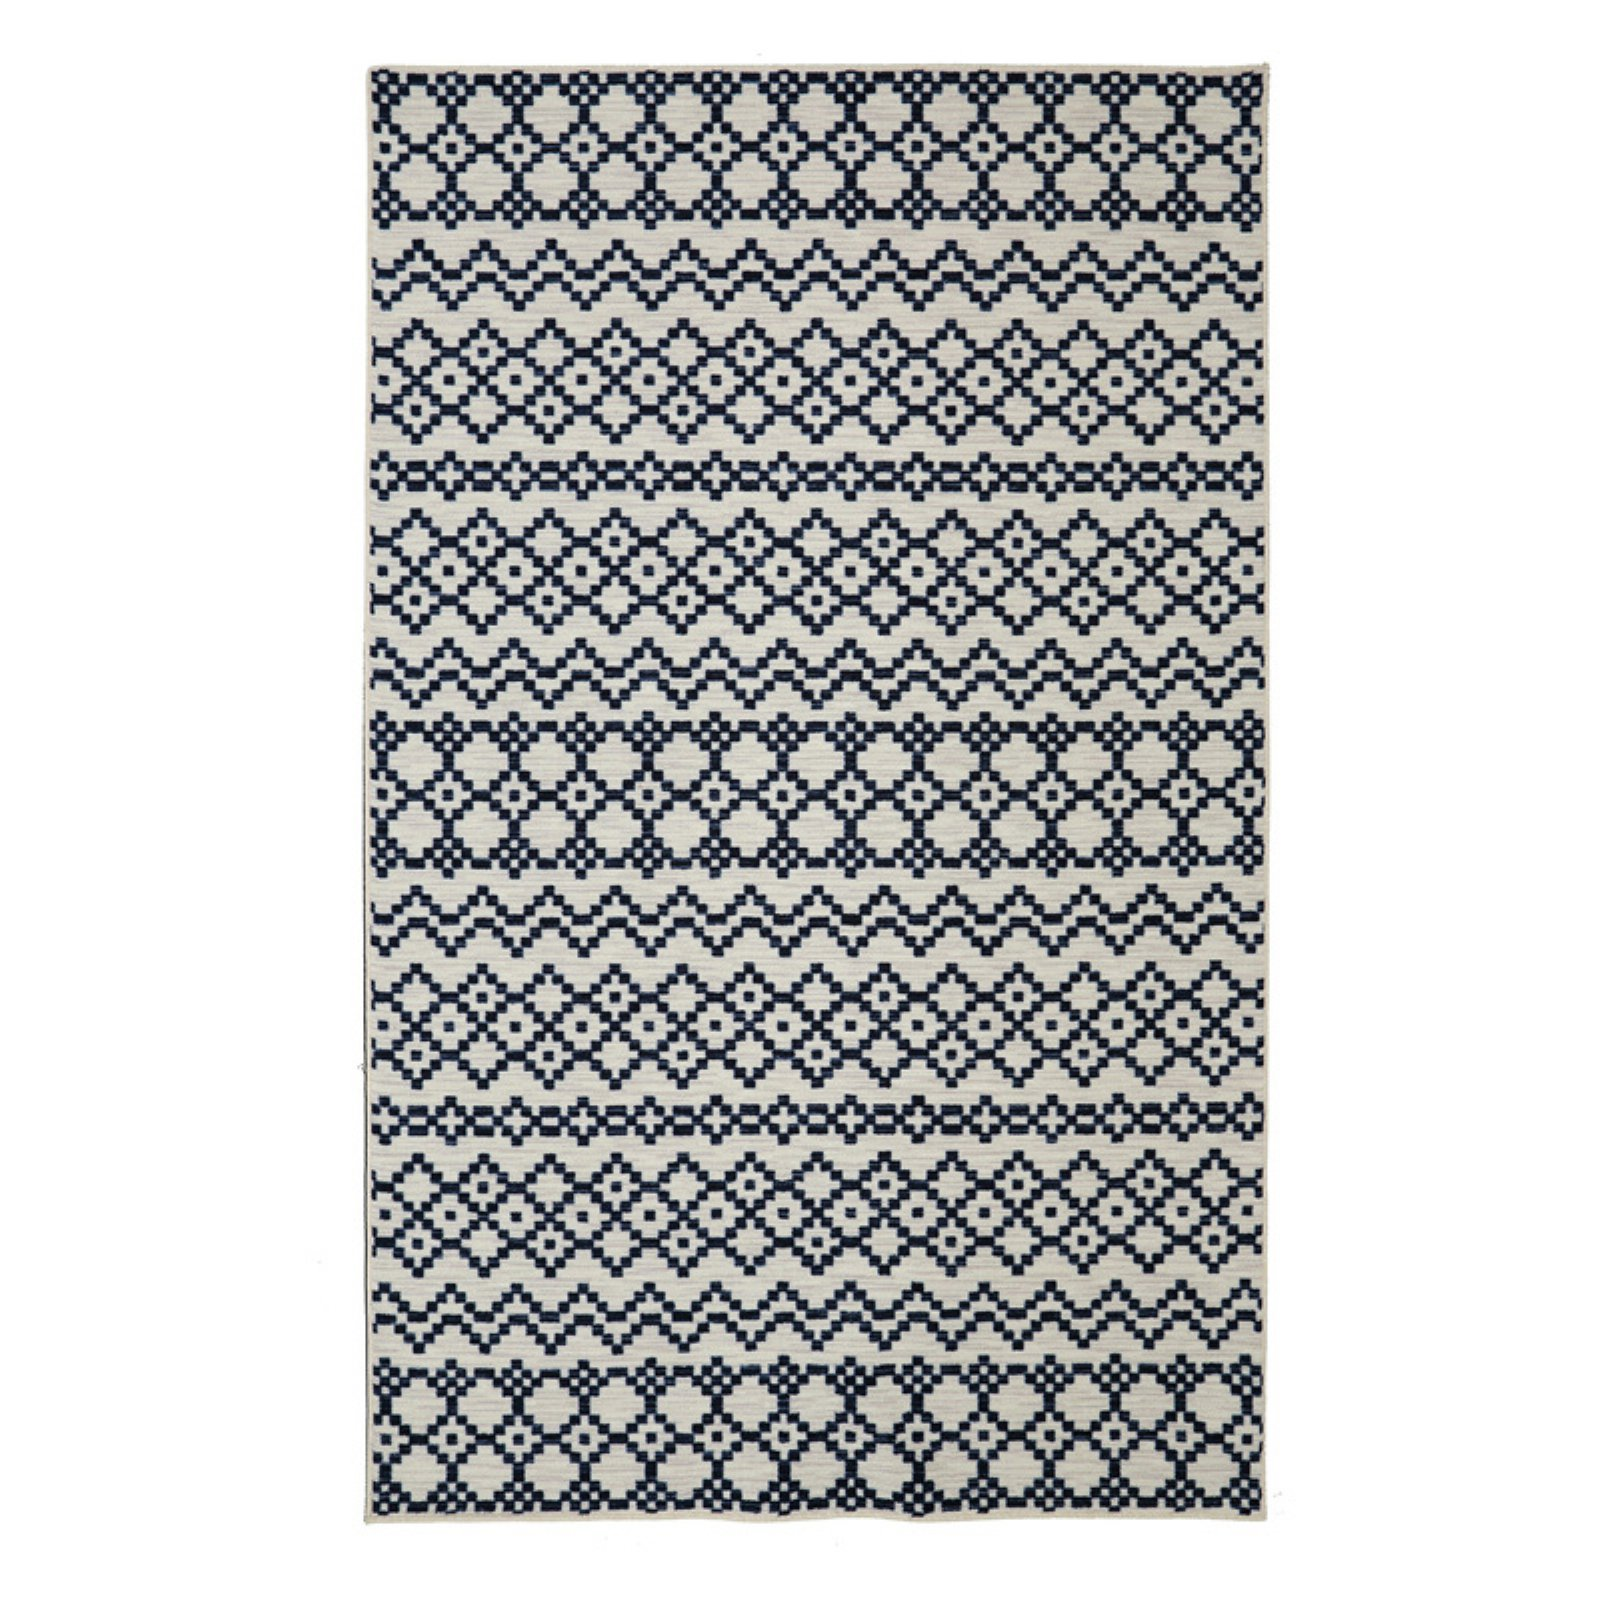 Mohawk Home Loop Print Base Aztec Bands Indoor Area Rug